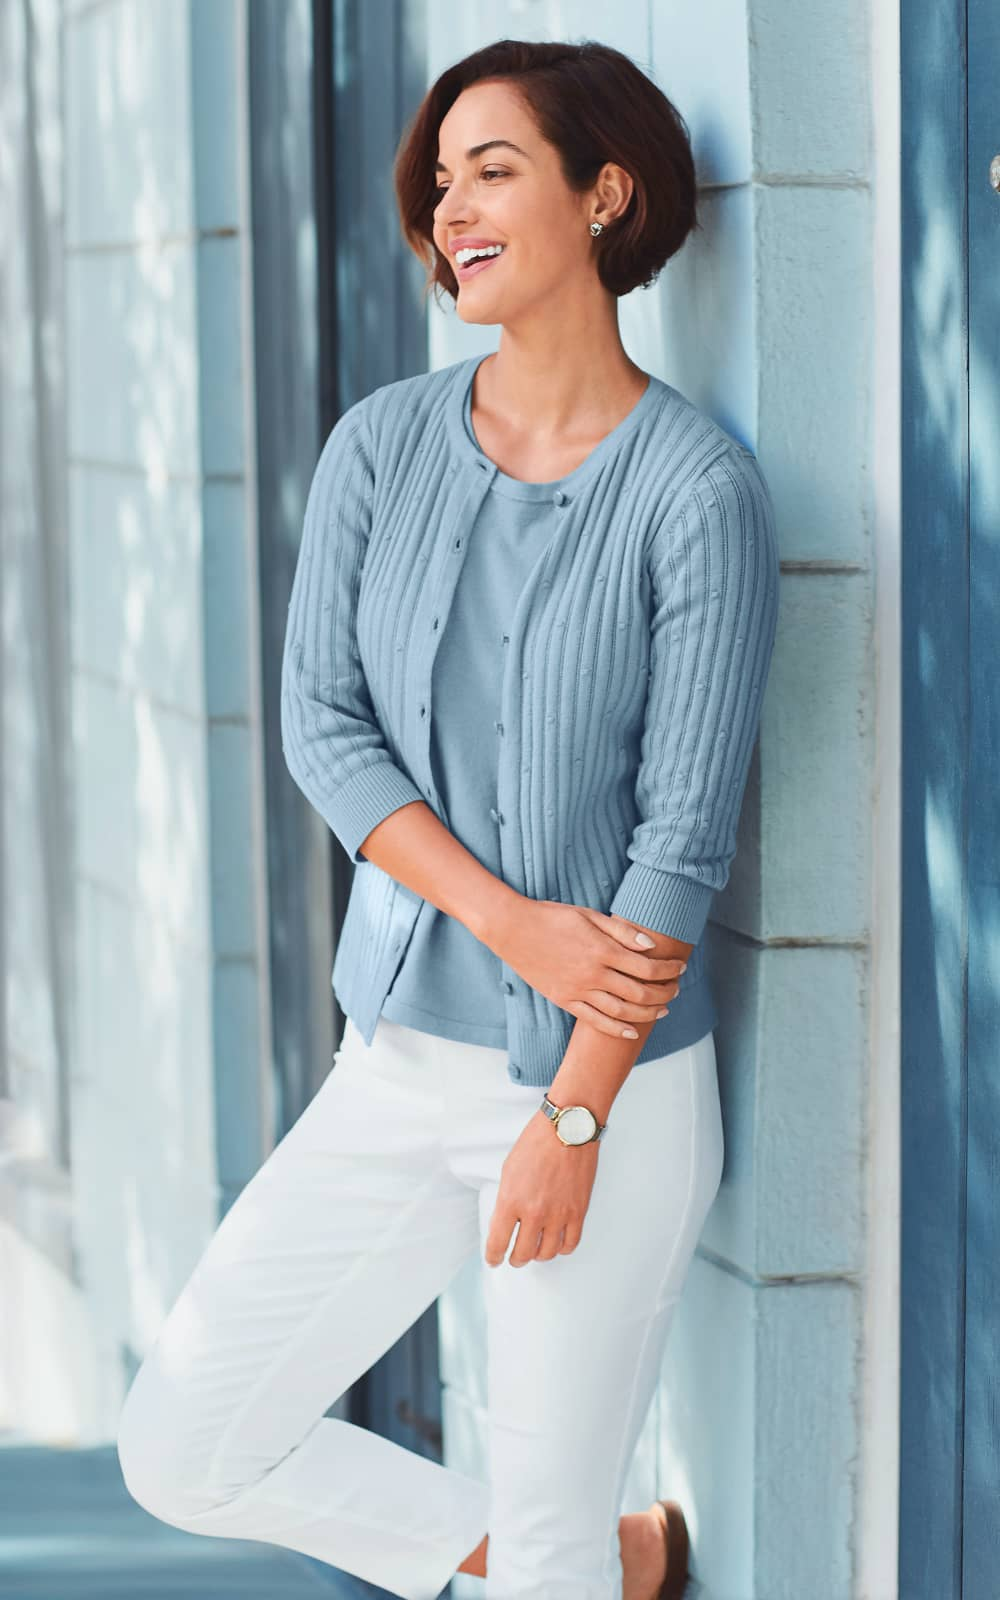 Our Perfect Textured Cardigan, a Perfect Sweater Tank, and a Signature Slimming® Luxe Stretch Ankle pant.